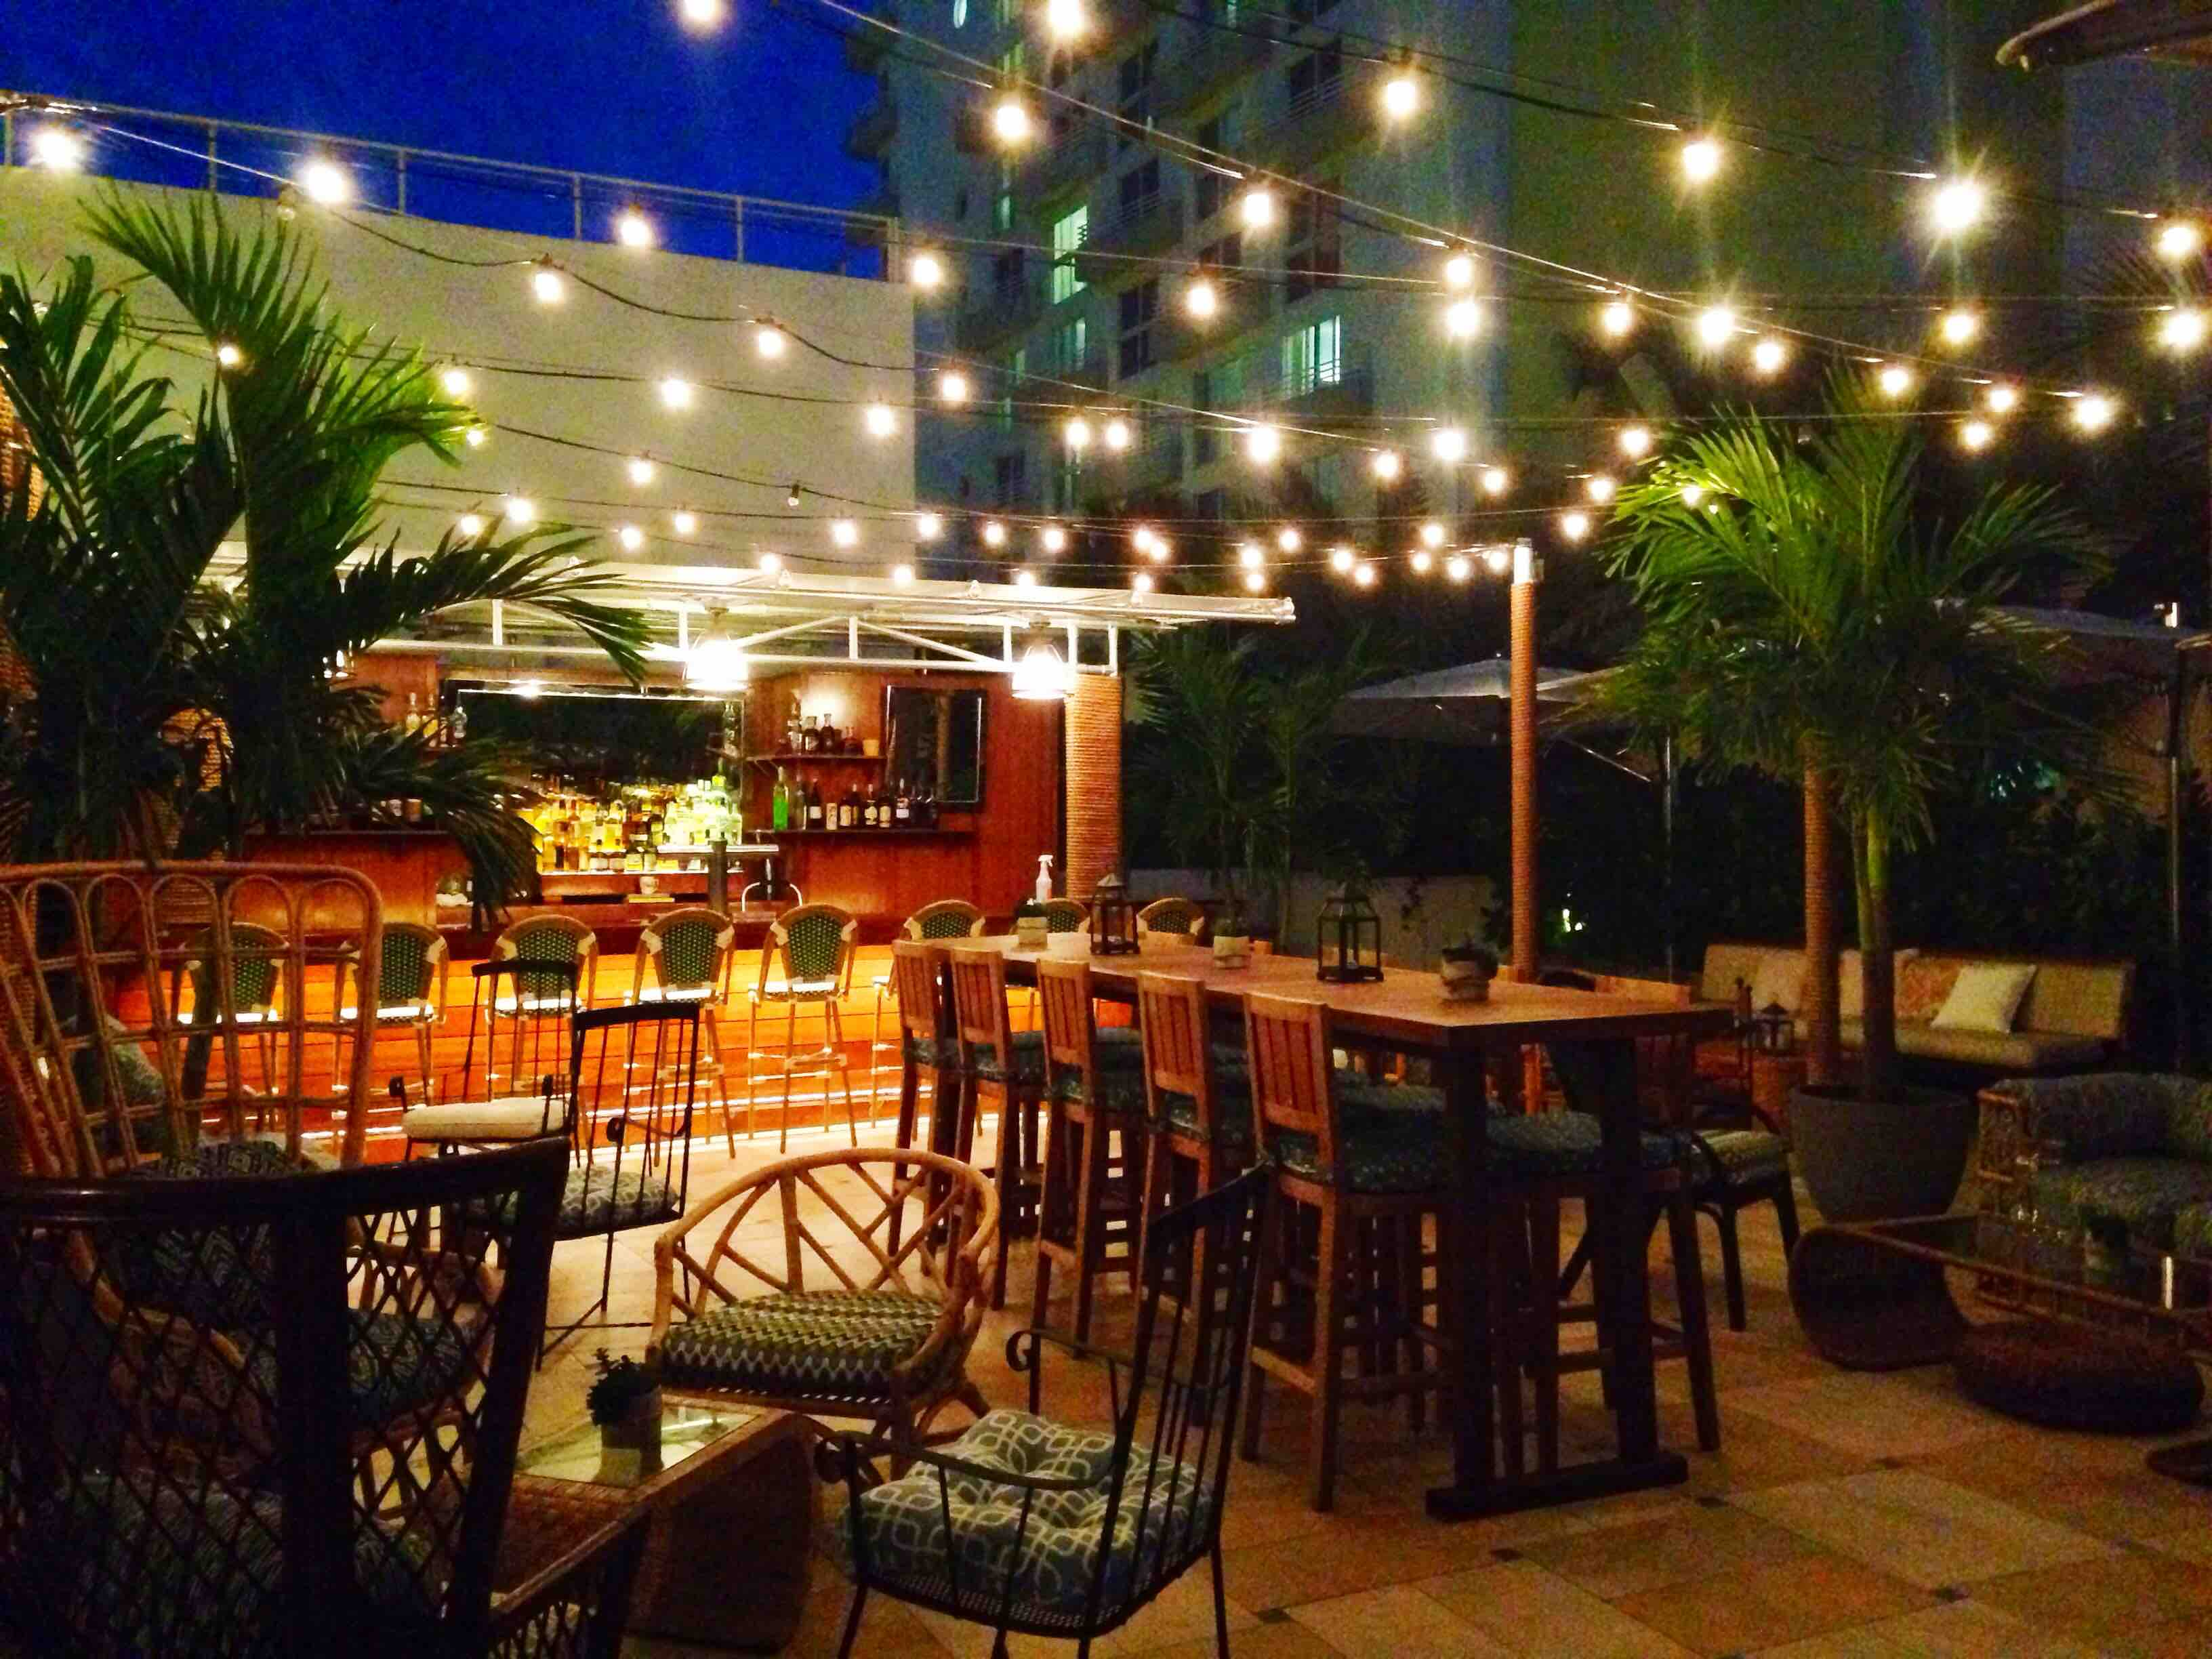 The Rum Line in Miami features its namesake spirit in a variety of cocktails, including punches that serve three to four people. Al fresco seating adds to the casual atmosphere.